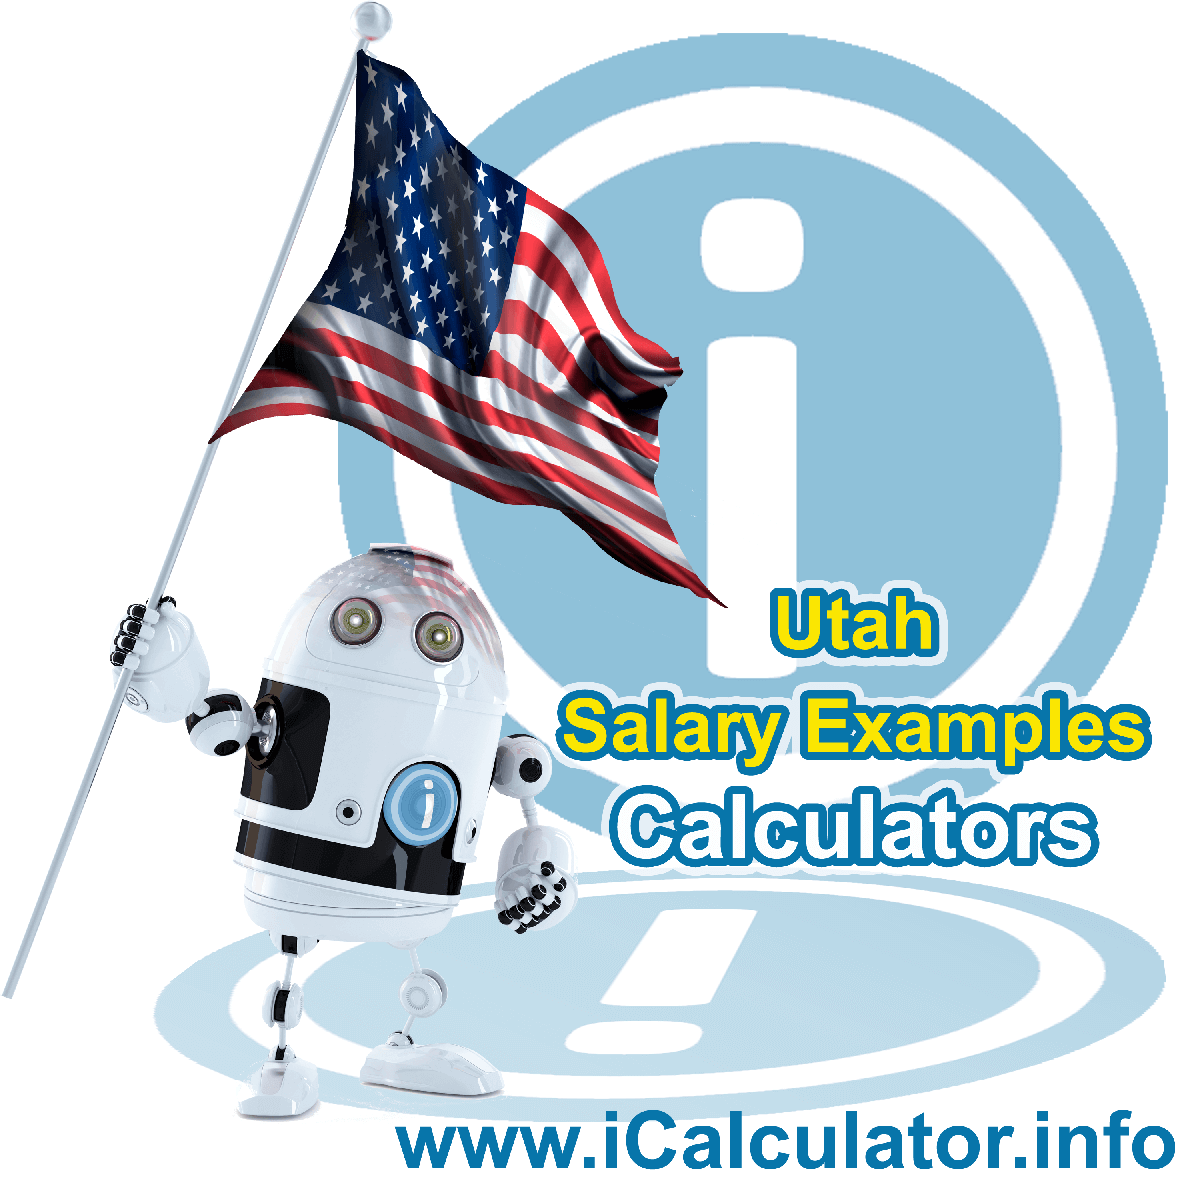 Utah Salary Example for $70,000.00 in 2020 | iCalculator | $70,000.00 salary example for employee and employer paying Utah State tincome taxes. Detailed salary after tax calculation including Utah State Tax, Federal State Tax, Medicare Deductions, Social Security, Capital Gains and other income tax and salary deductions complete with supporting Utah state tax tables